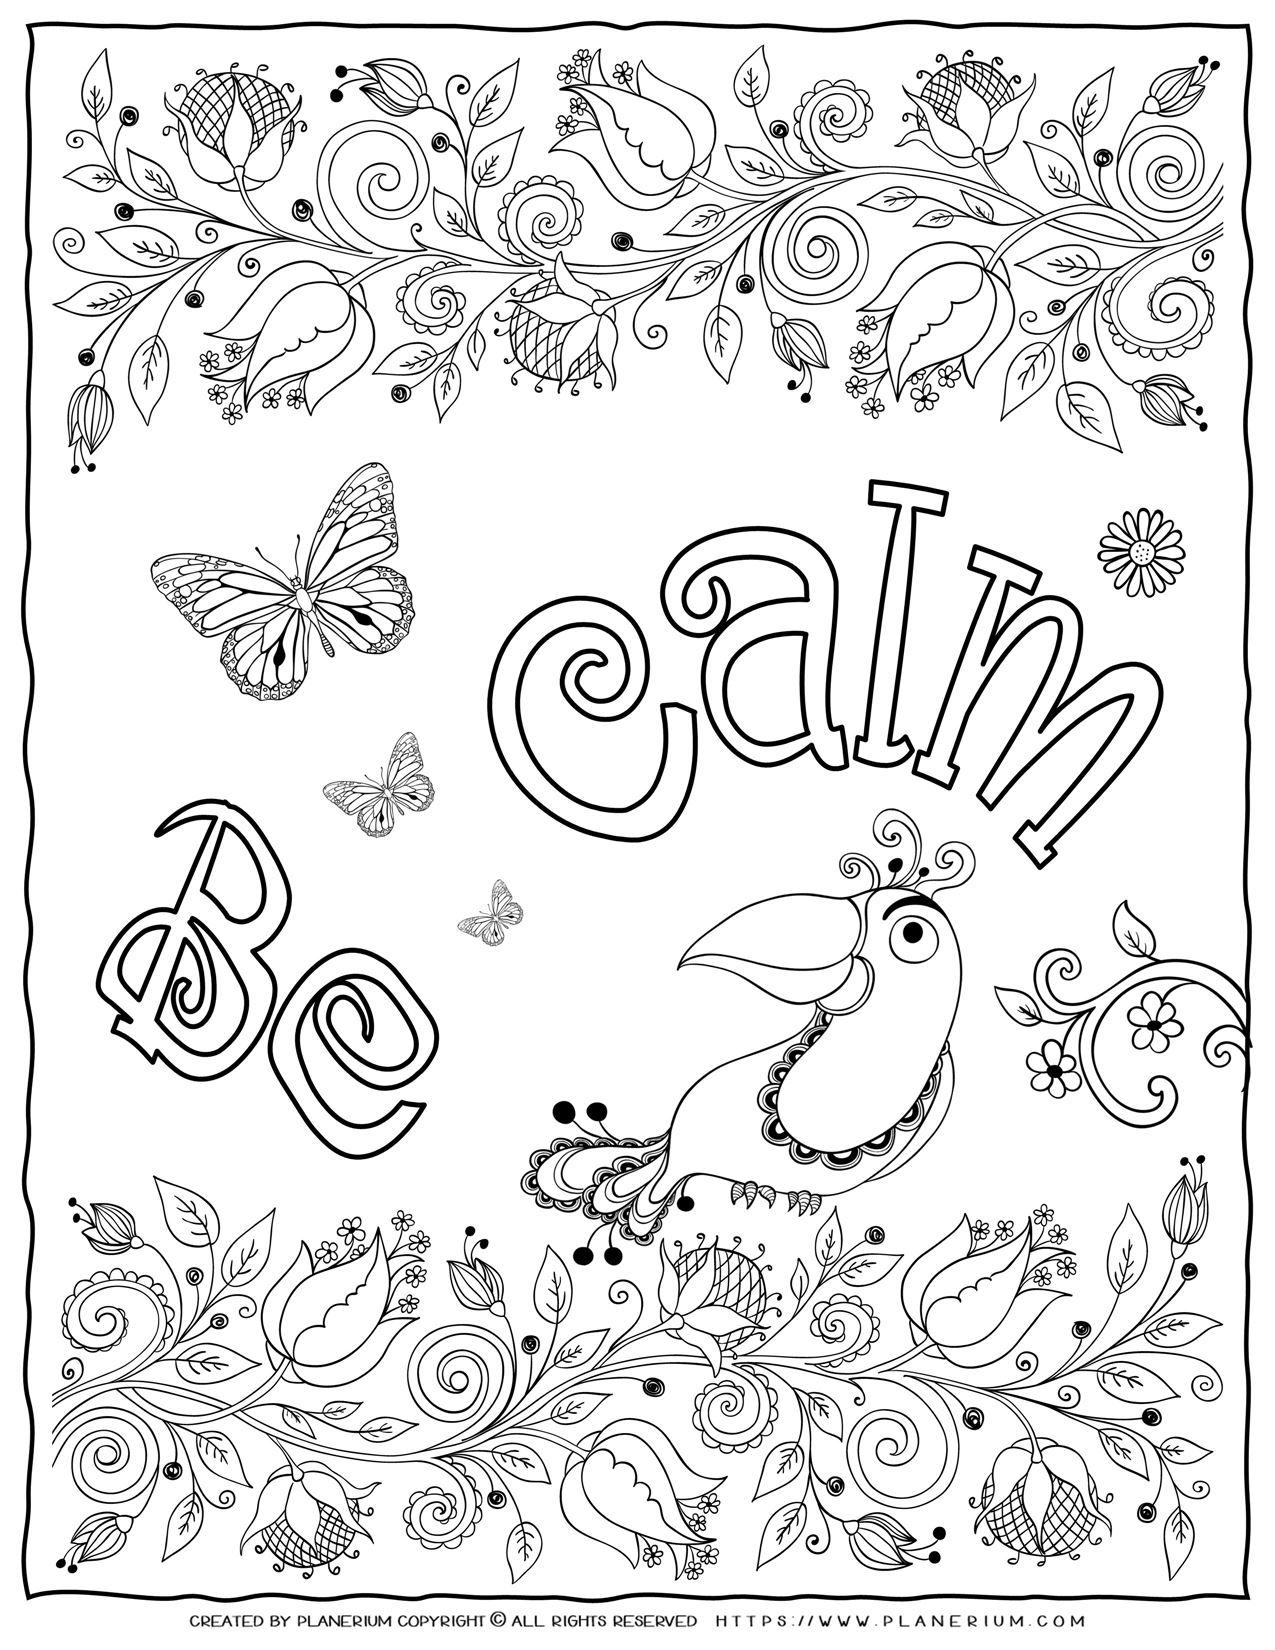 Adult Coloring Pages - Mindfulness Be Calm | Planerium